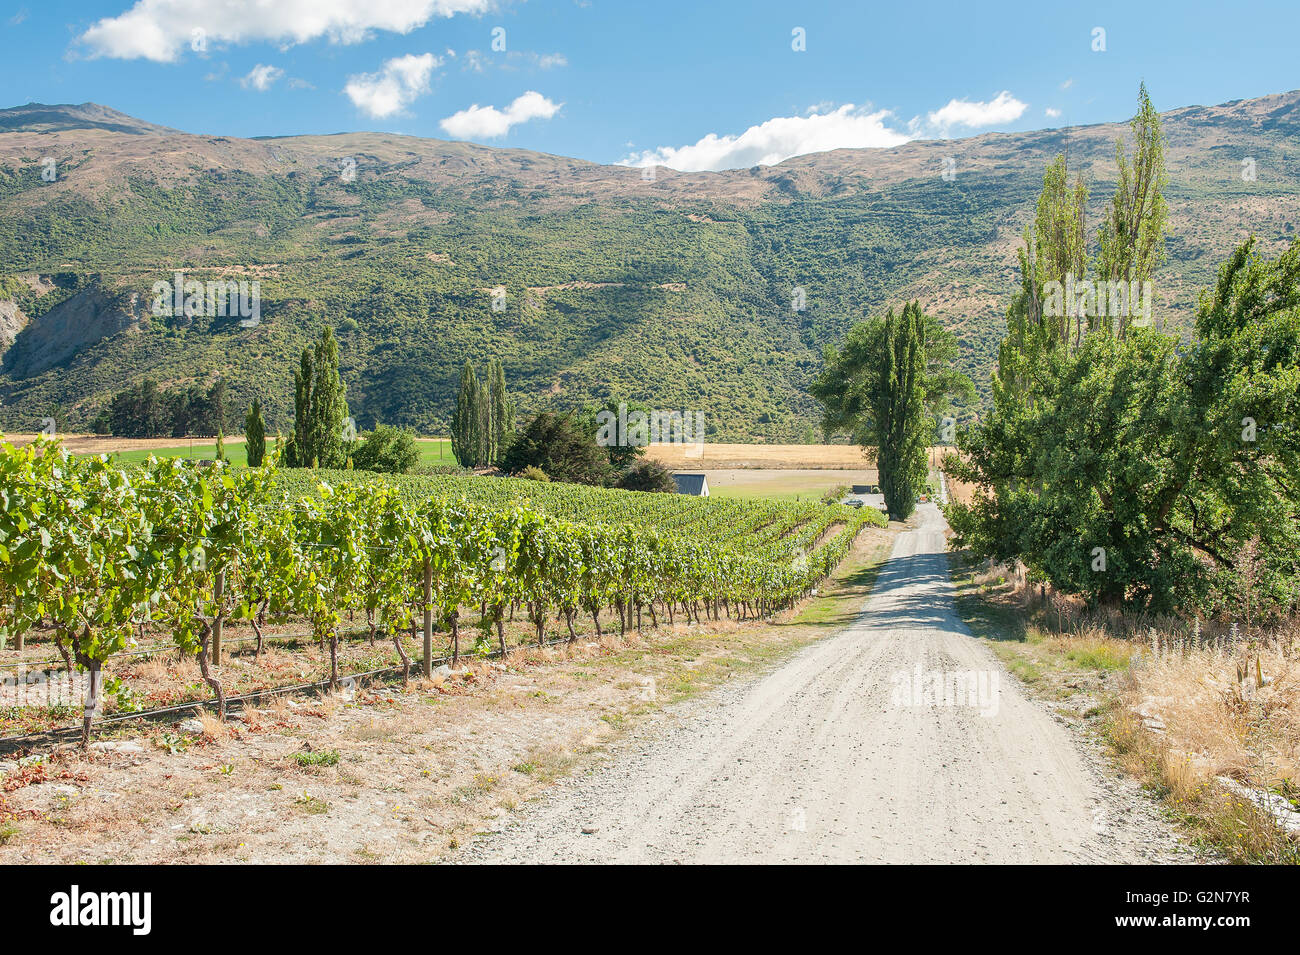 Gibbston Valley in Central Otago wine region on the South Island in New Zealand - Stock Image